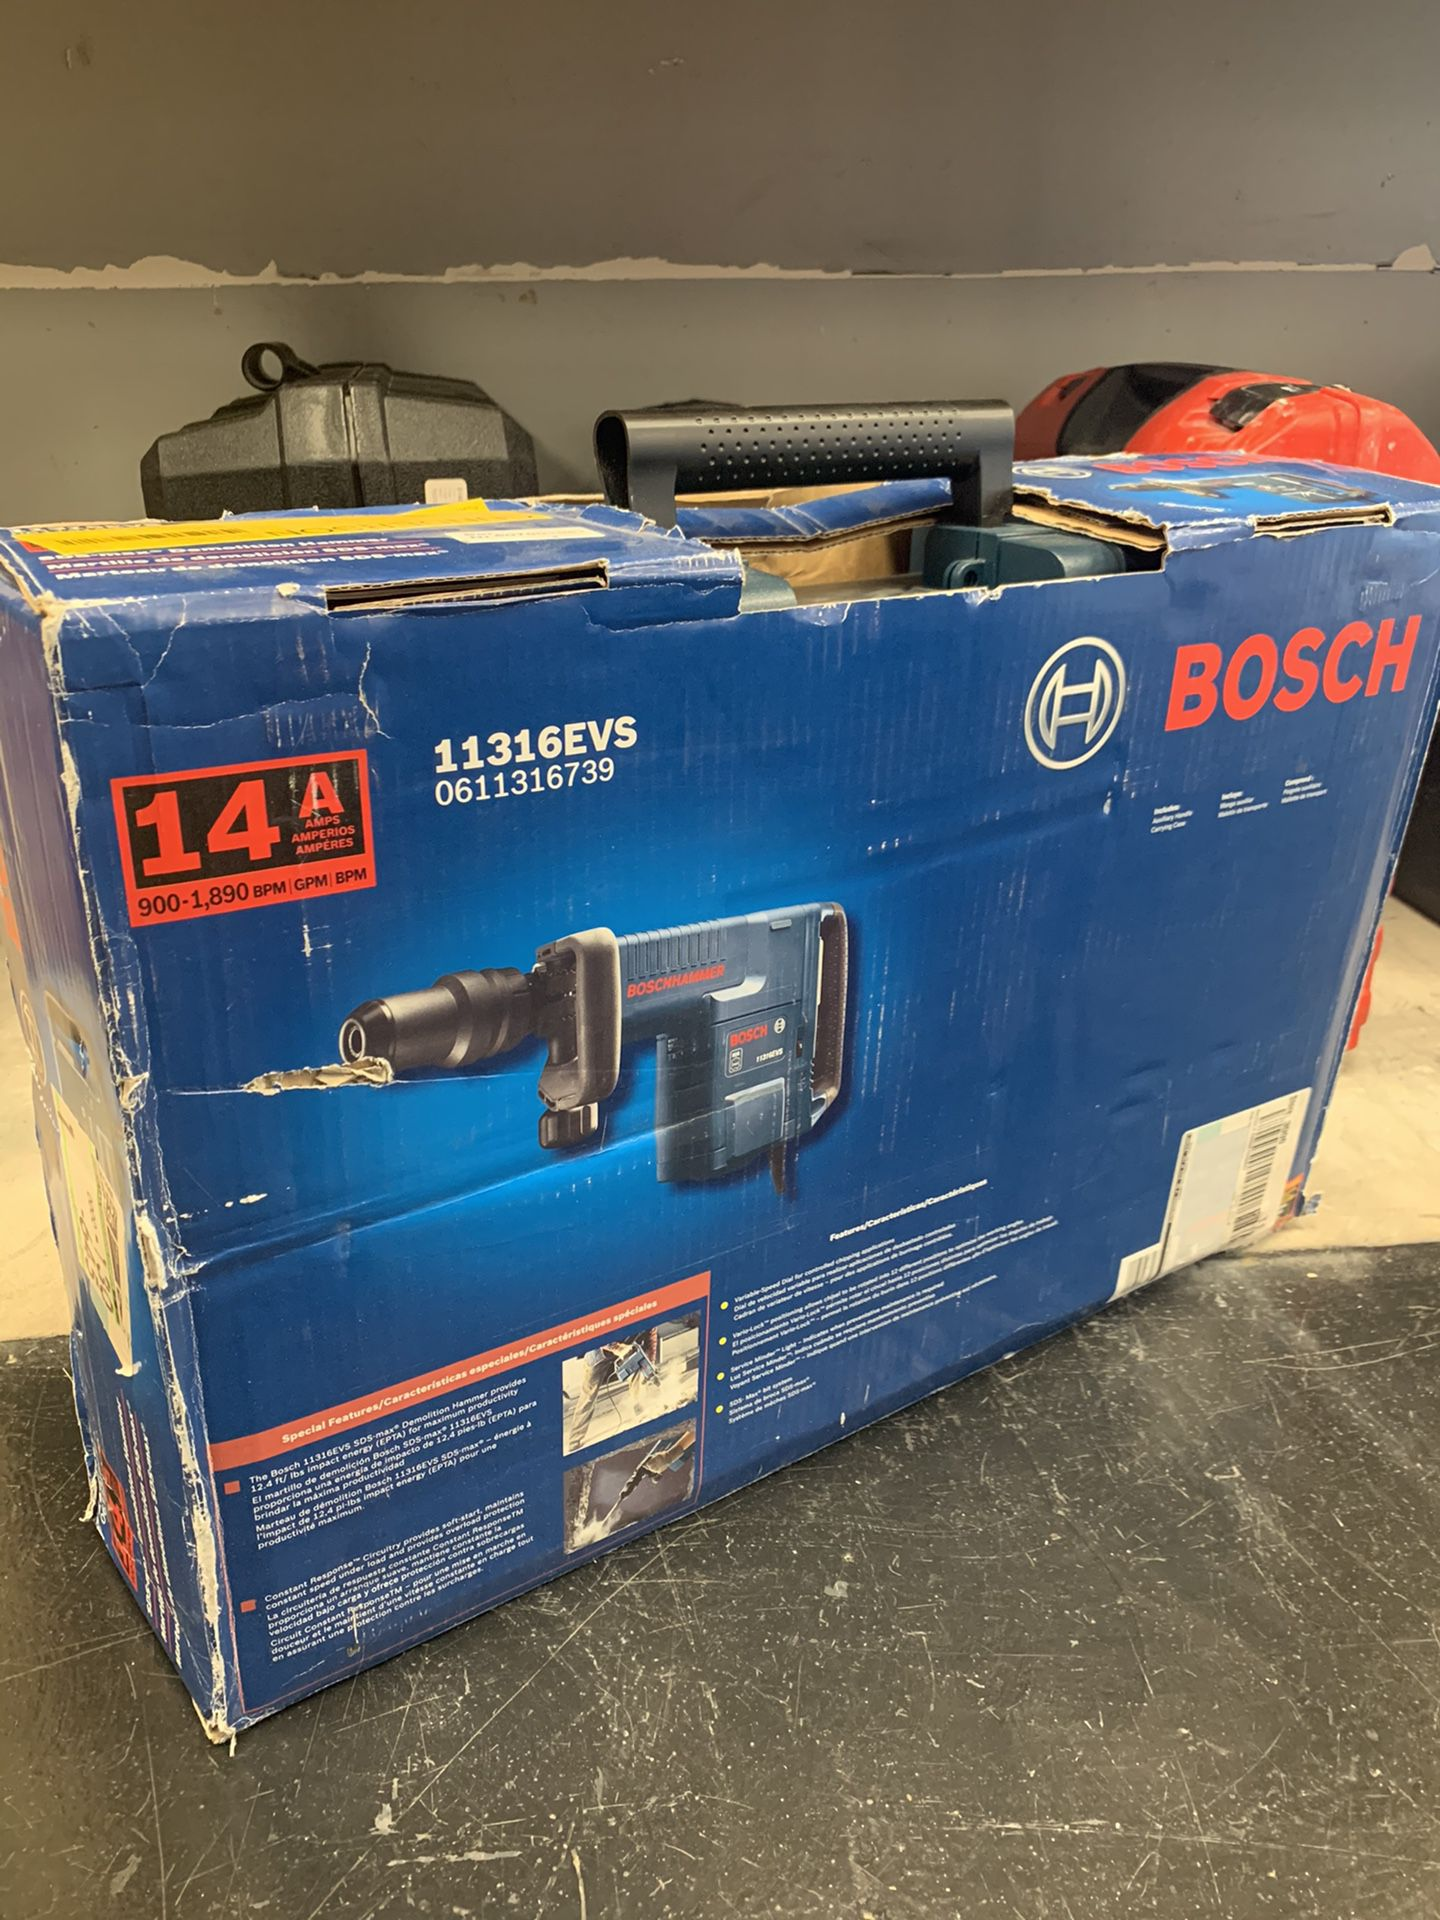 BOSCH Demolition Hammer Gun